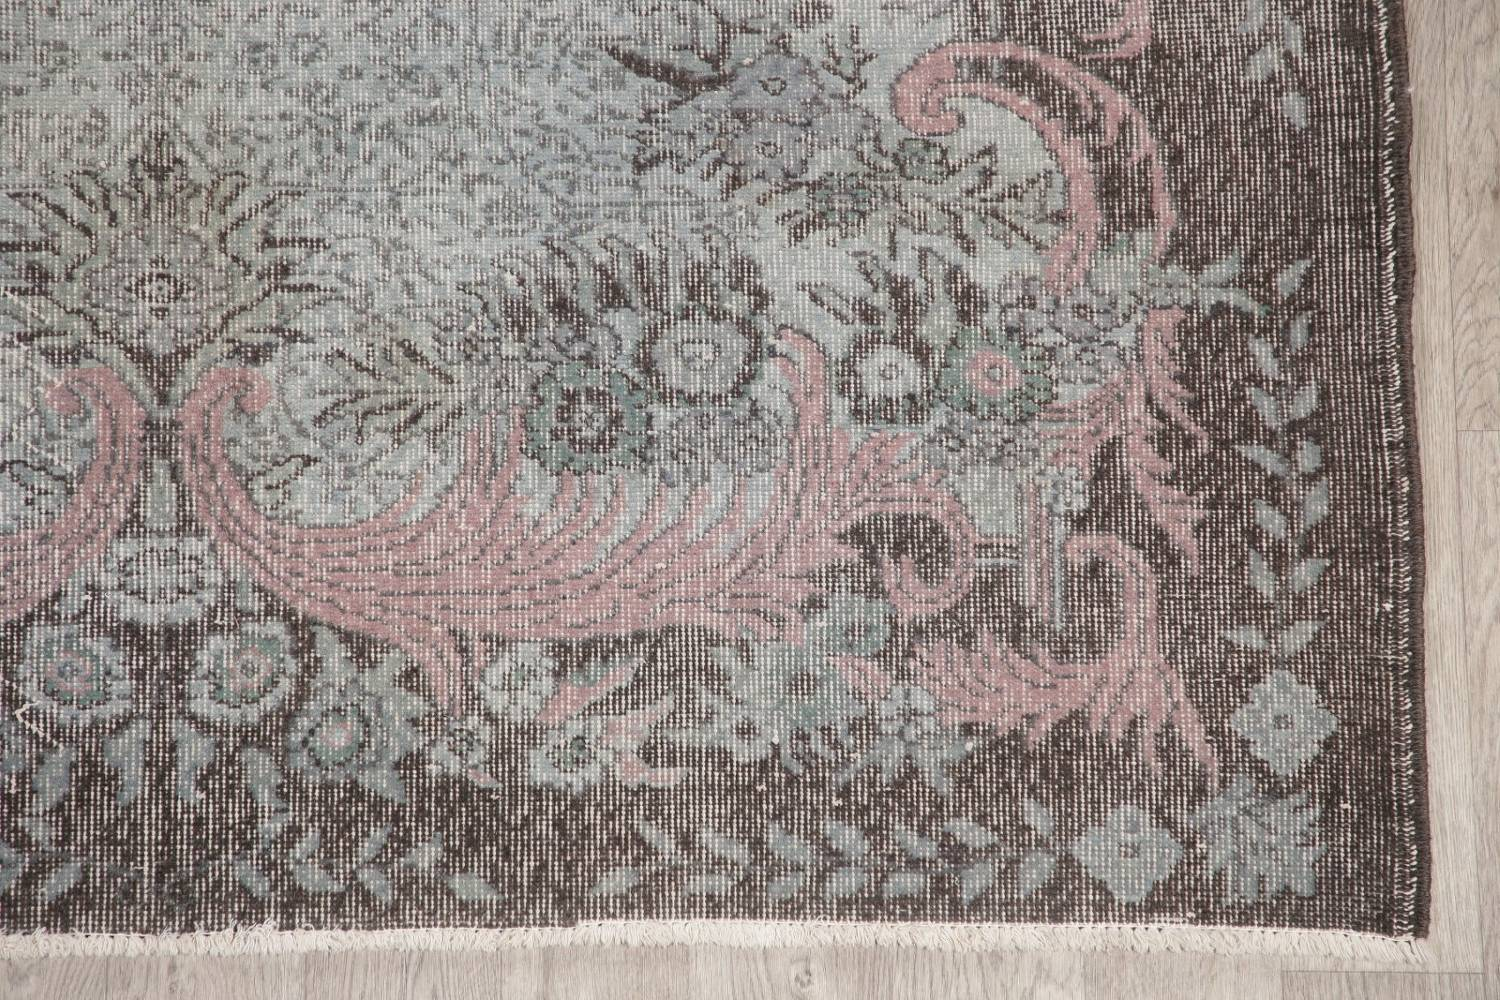 Antique Muted Distressed Aubusson Oriental Area Rug 6x10 image 5